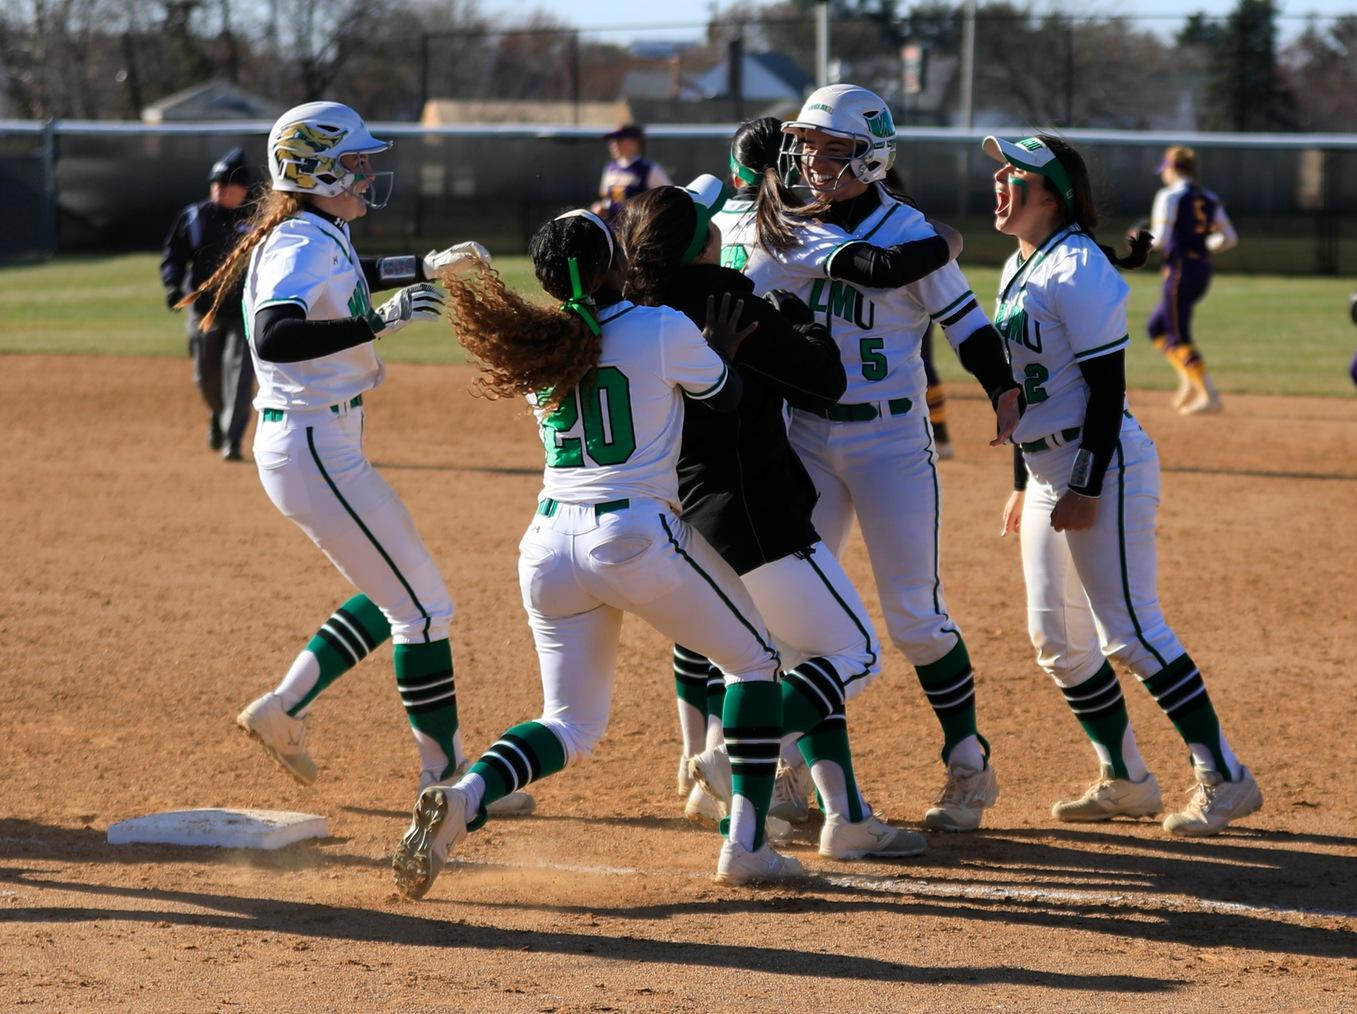 Copyright 2019; Wilmington University. All rights reserved. Photo of the celebration after Angela Antonini's walk-off against West Chester. Photo by Chris Vitale. March 26, 2019 vs. West Chester.